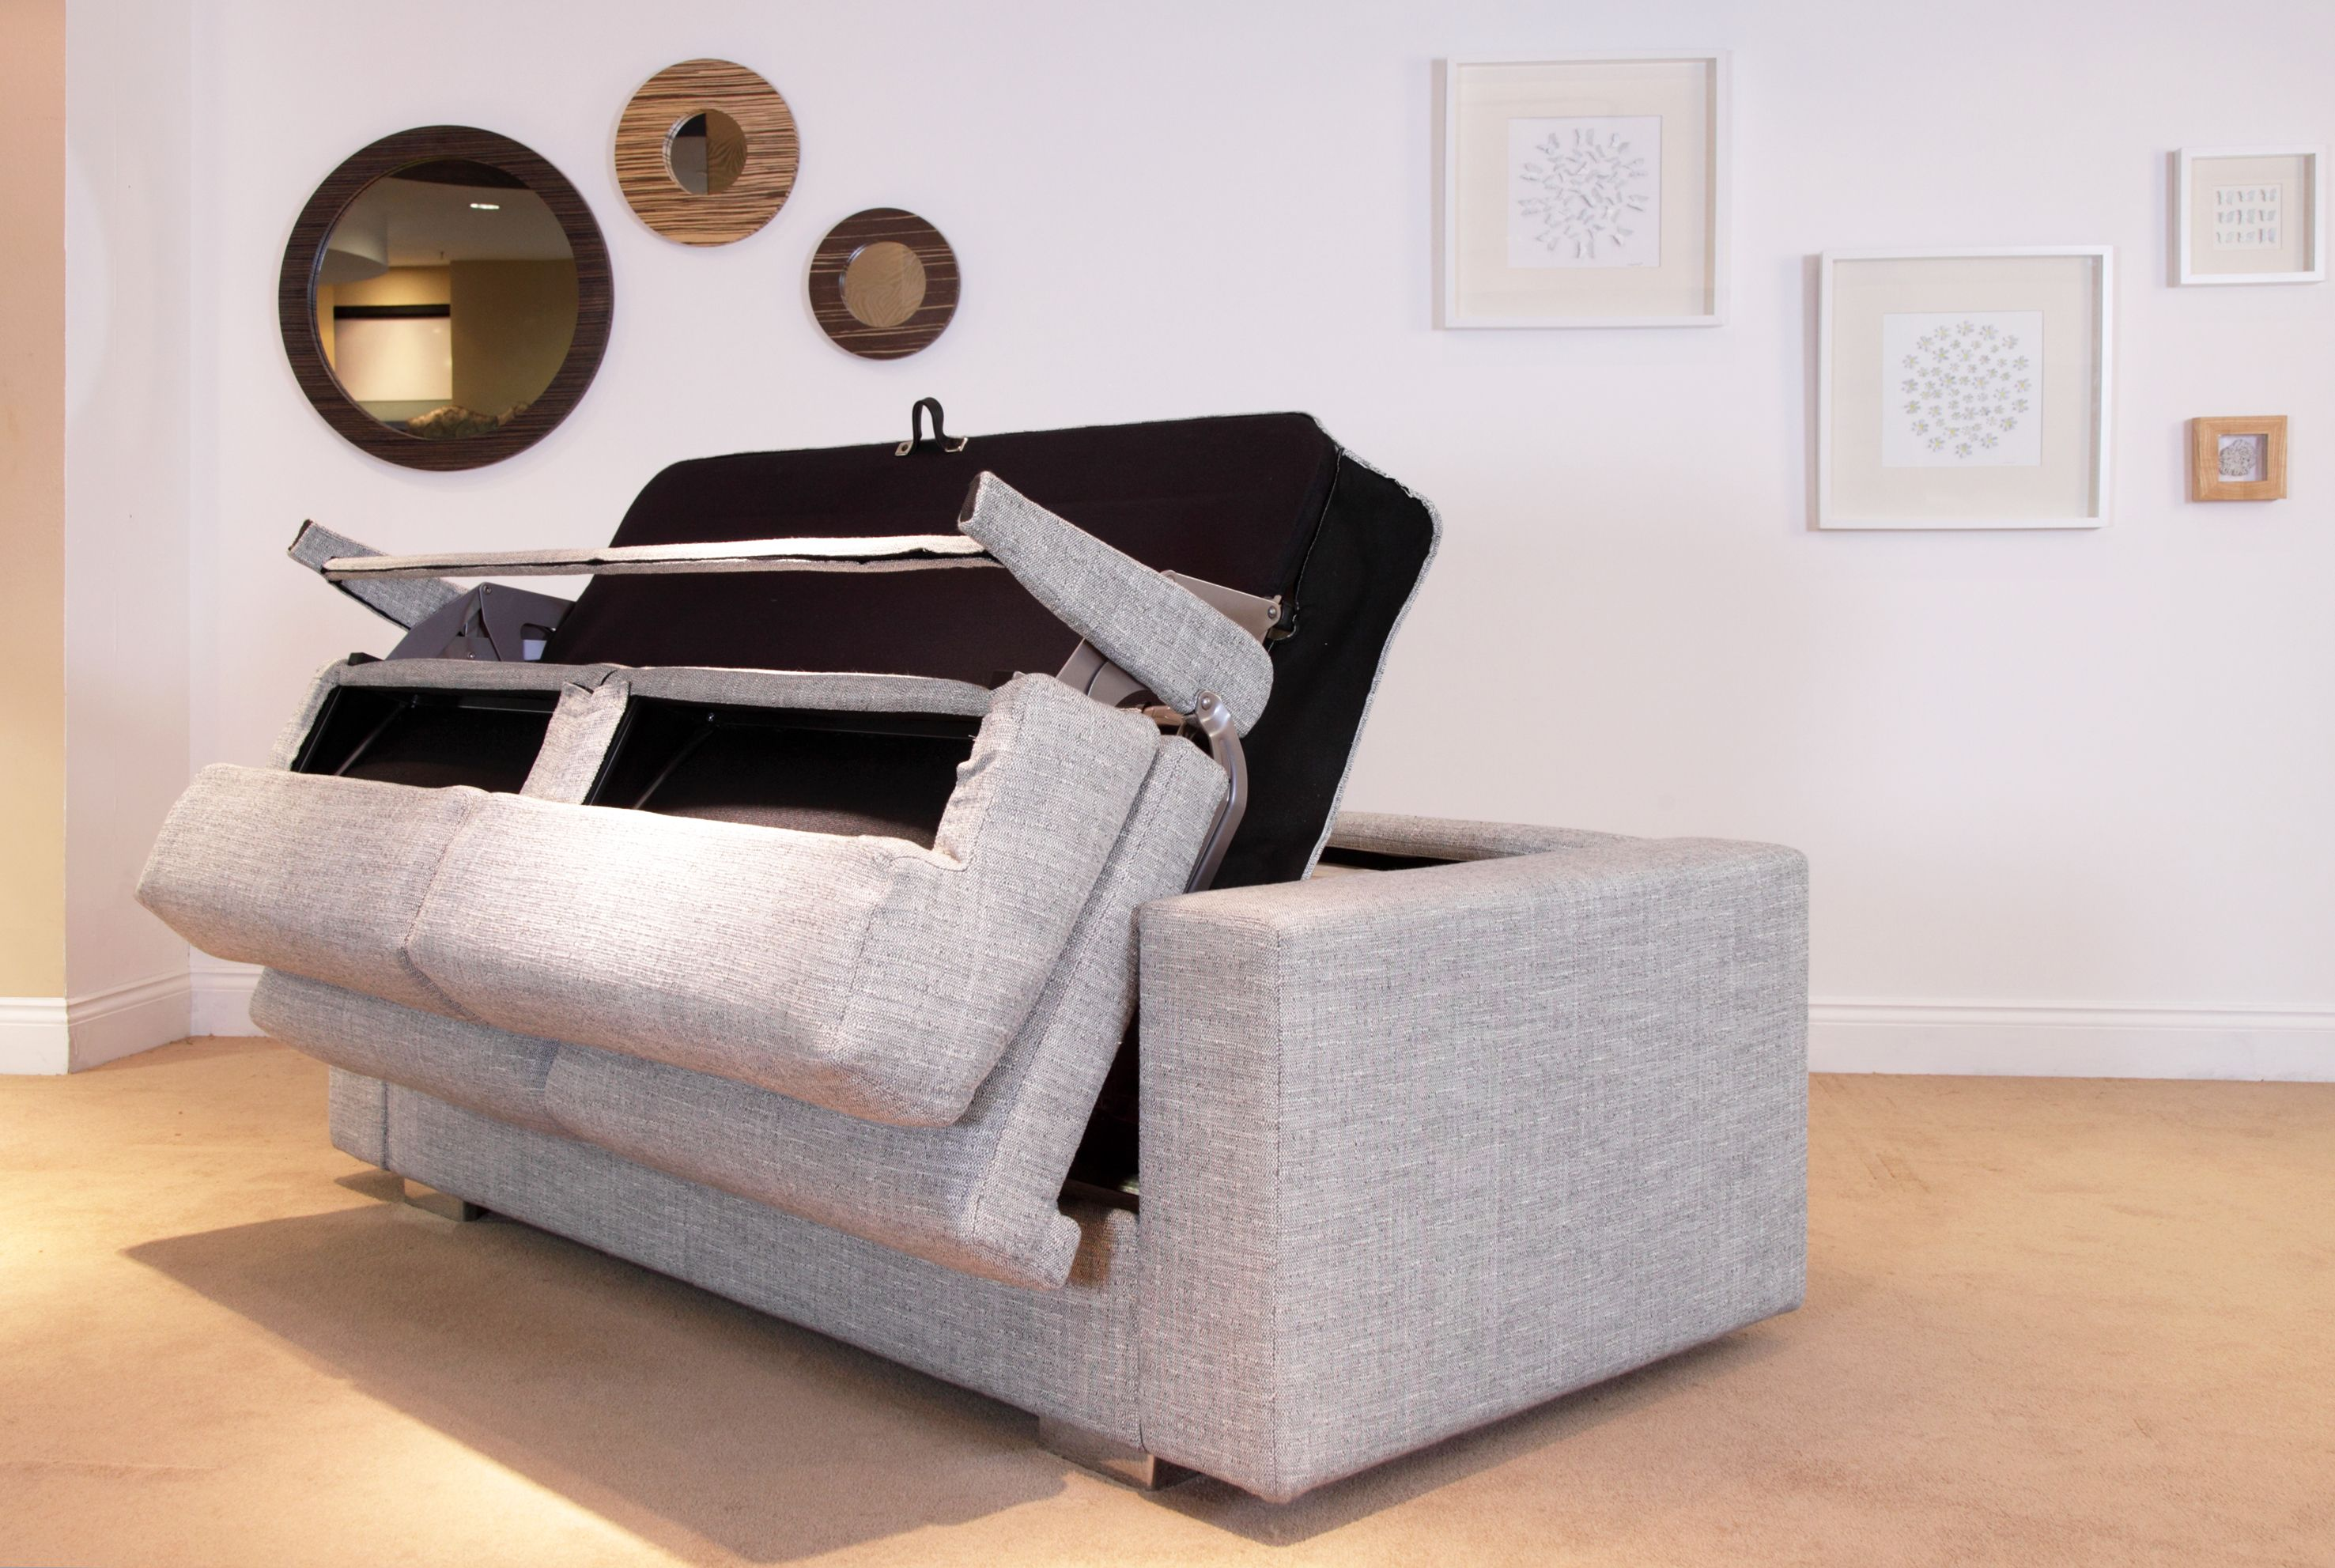 easy to open close bed mechanism convertible furniture sofa rh pinterest com european style sofa beds